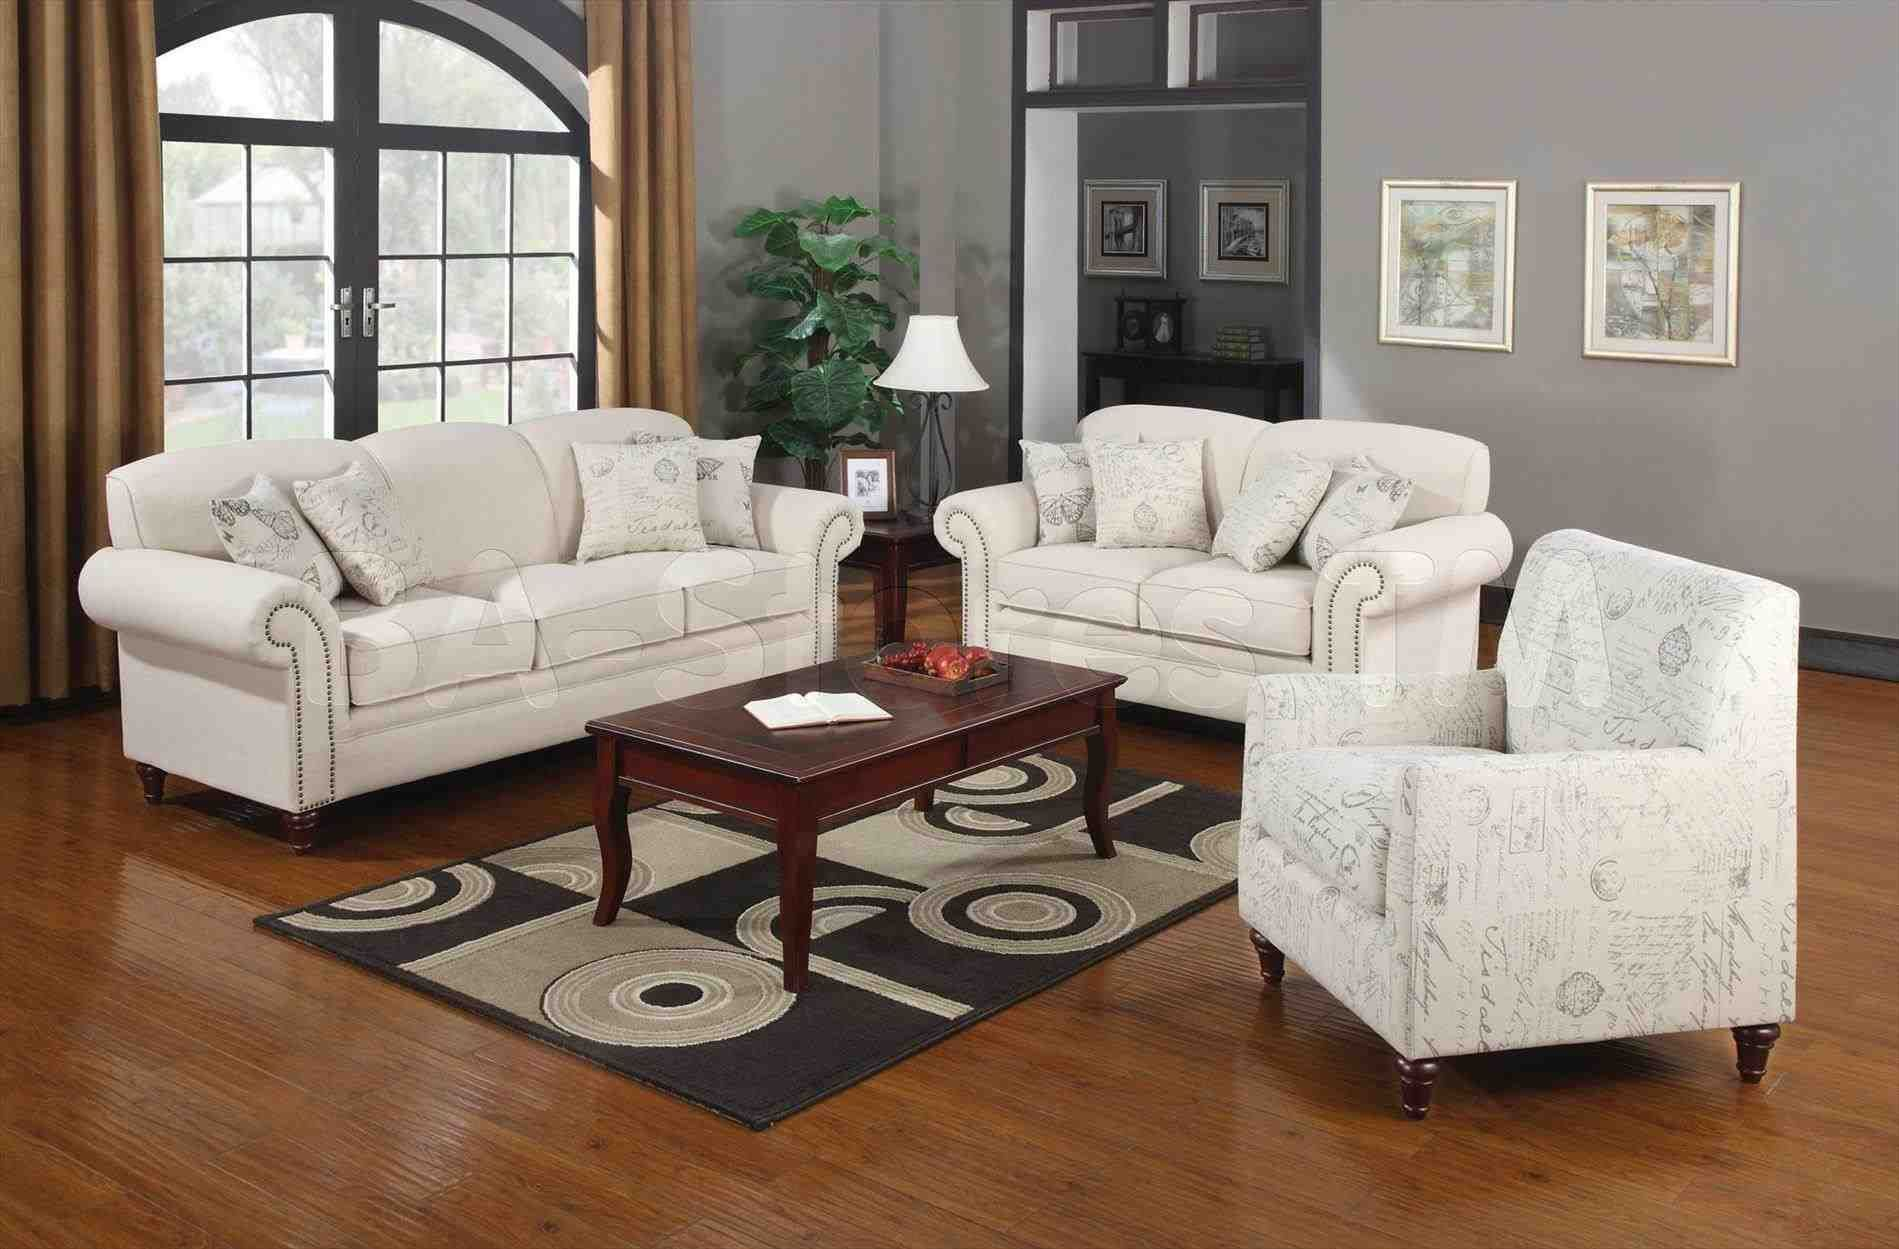 Cheap living room furniture sets for sale sofa set price india online prices philippines white up full size of also chairs chairsonline on pinterest rh za